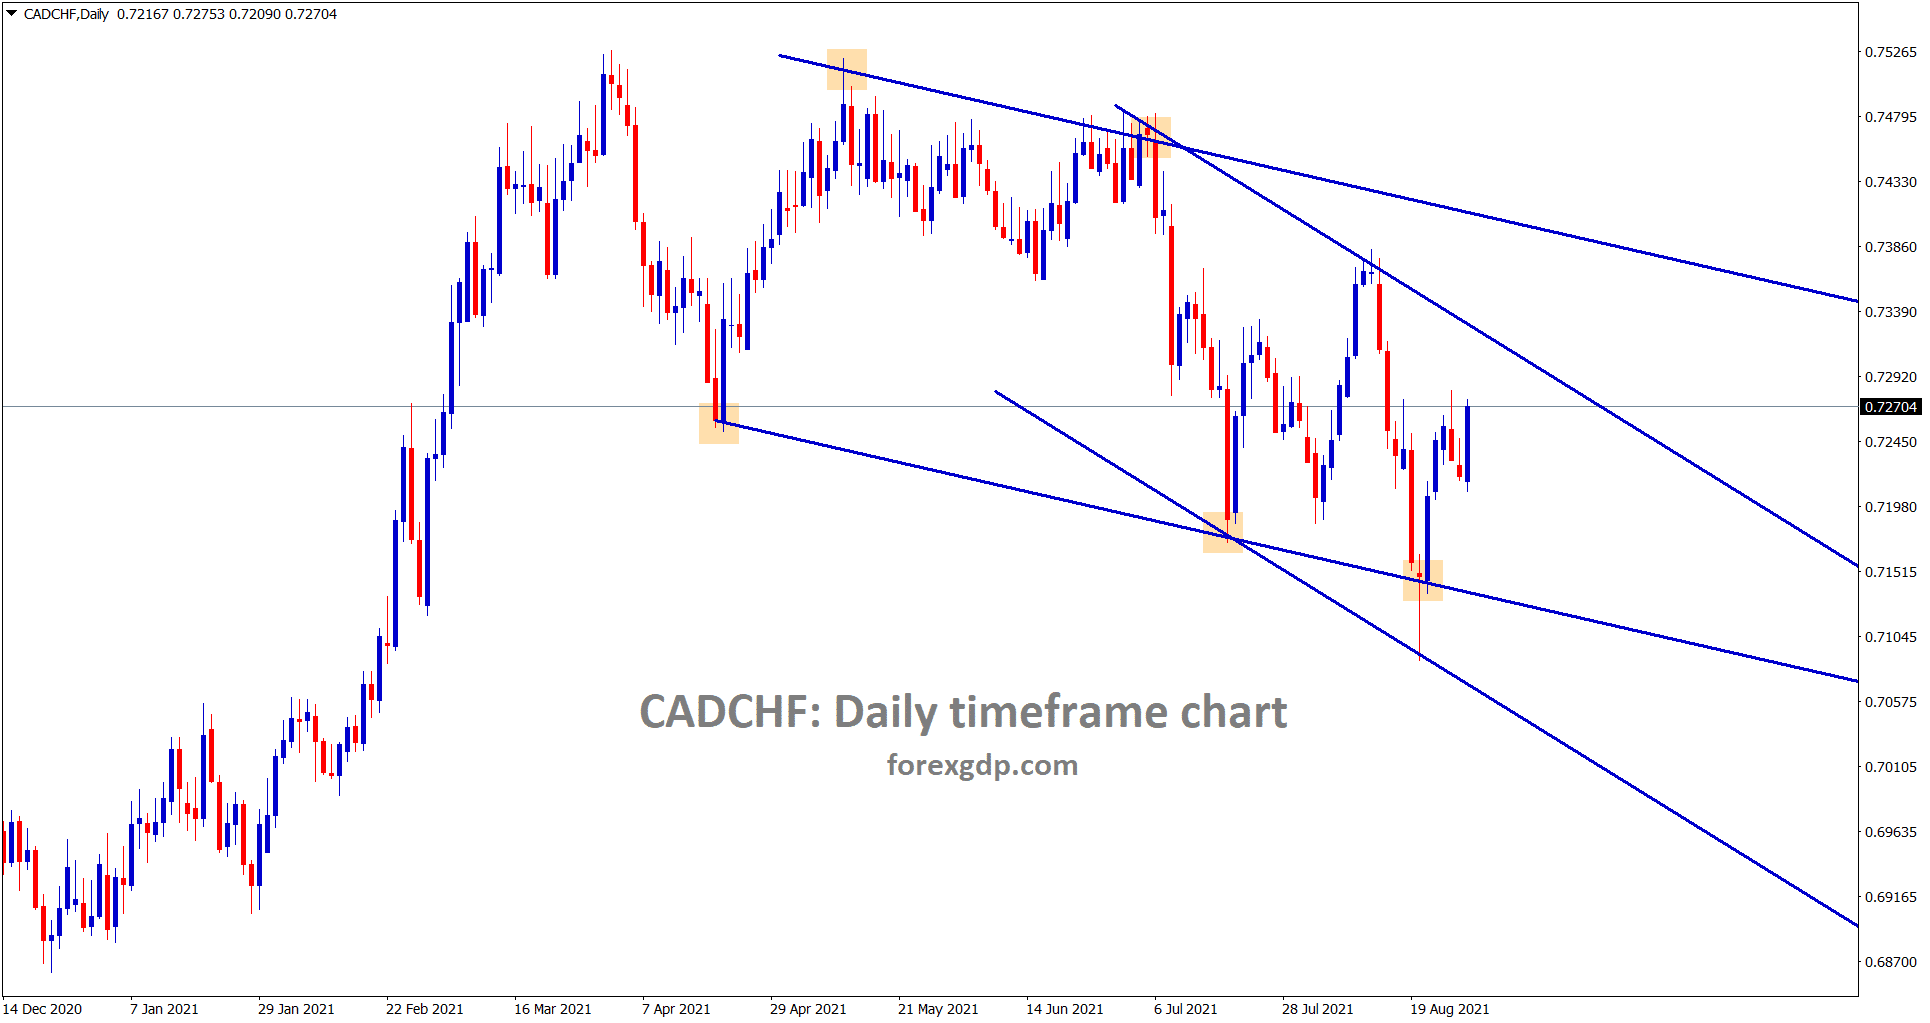 CADCHF is moving in a descending channel range